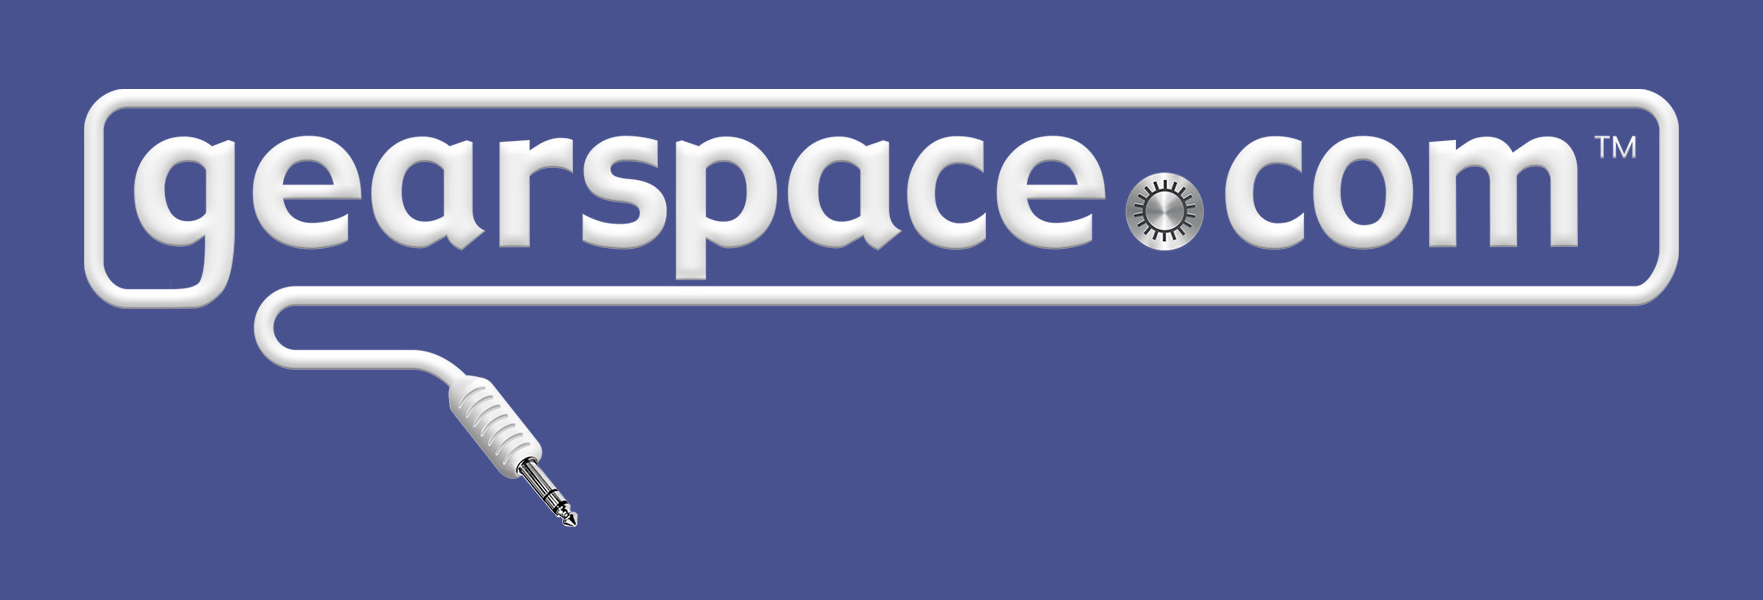 Gearspace Logo - Synthax Audio UK